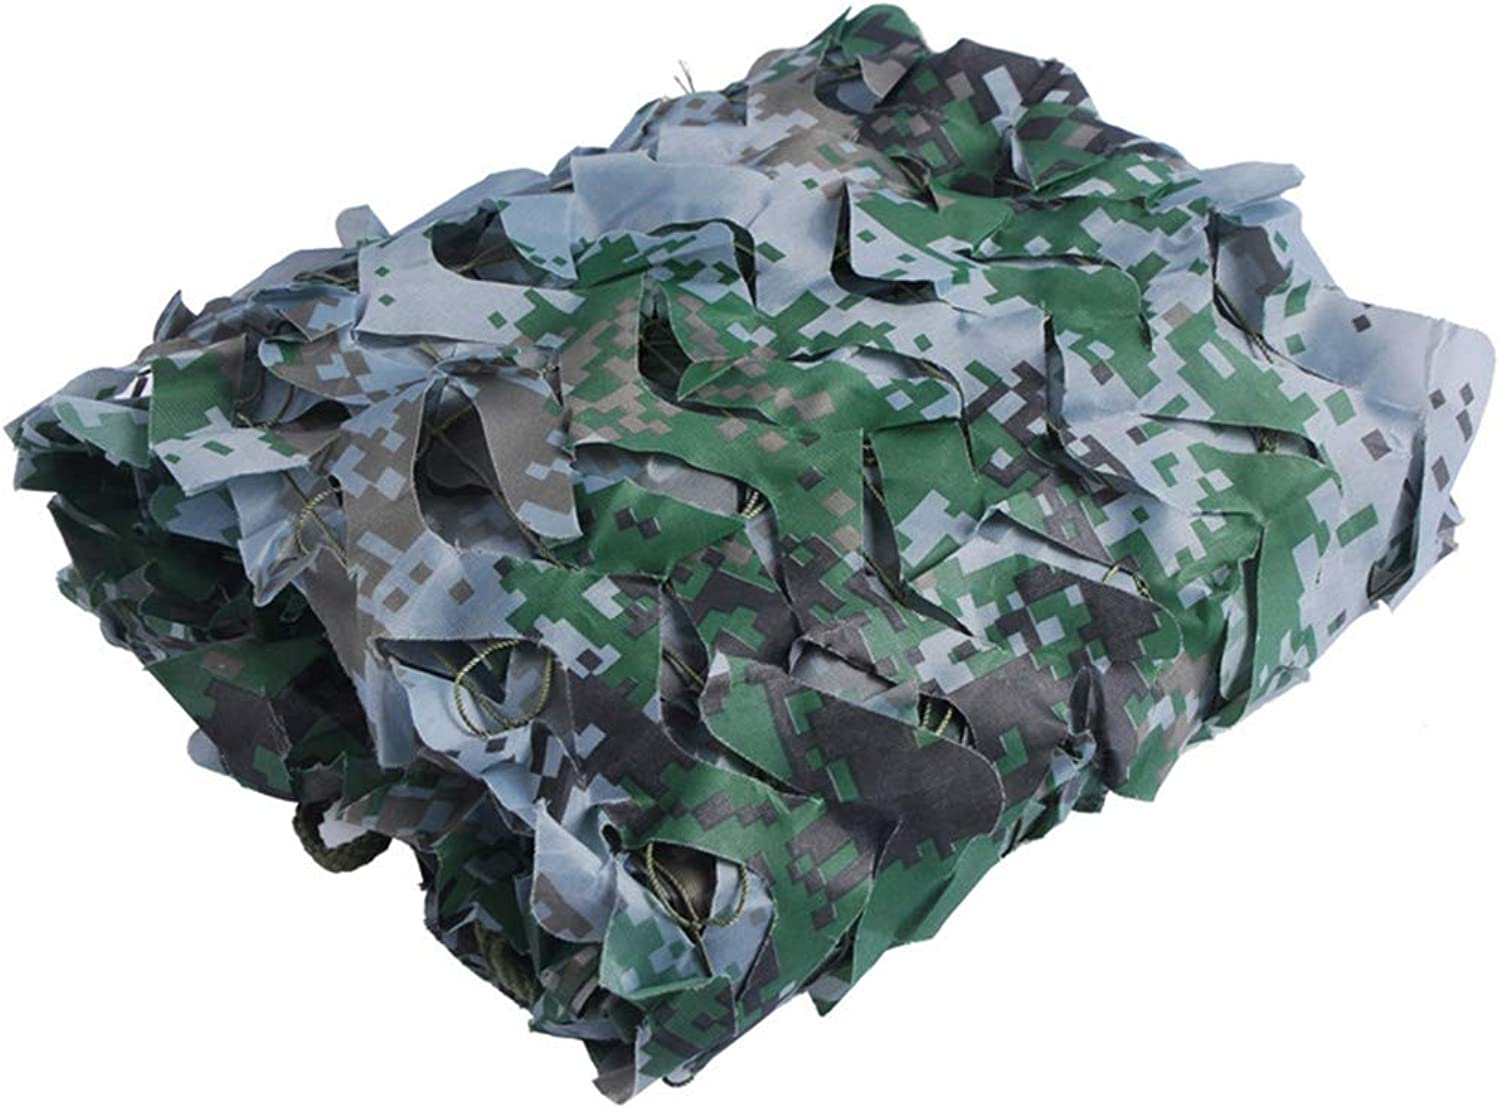 Woodland Camouflage Netting Oxford Polyester Army Mesh nets for Sunshade Decoration Hunting Blind Shooting Camping Photography Jungle